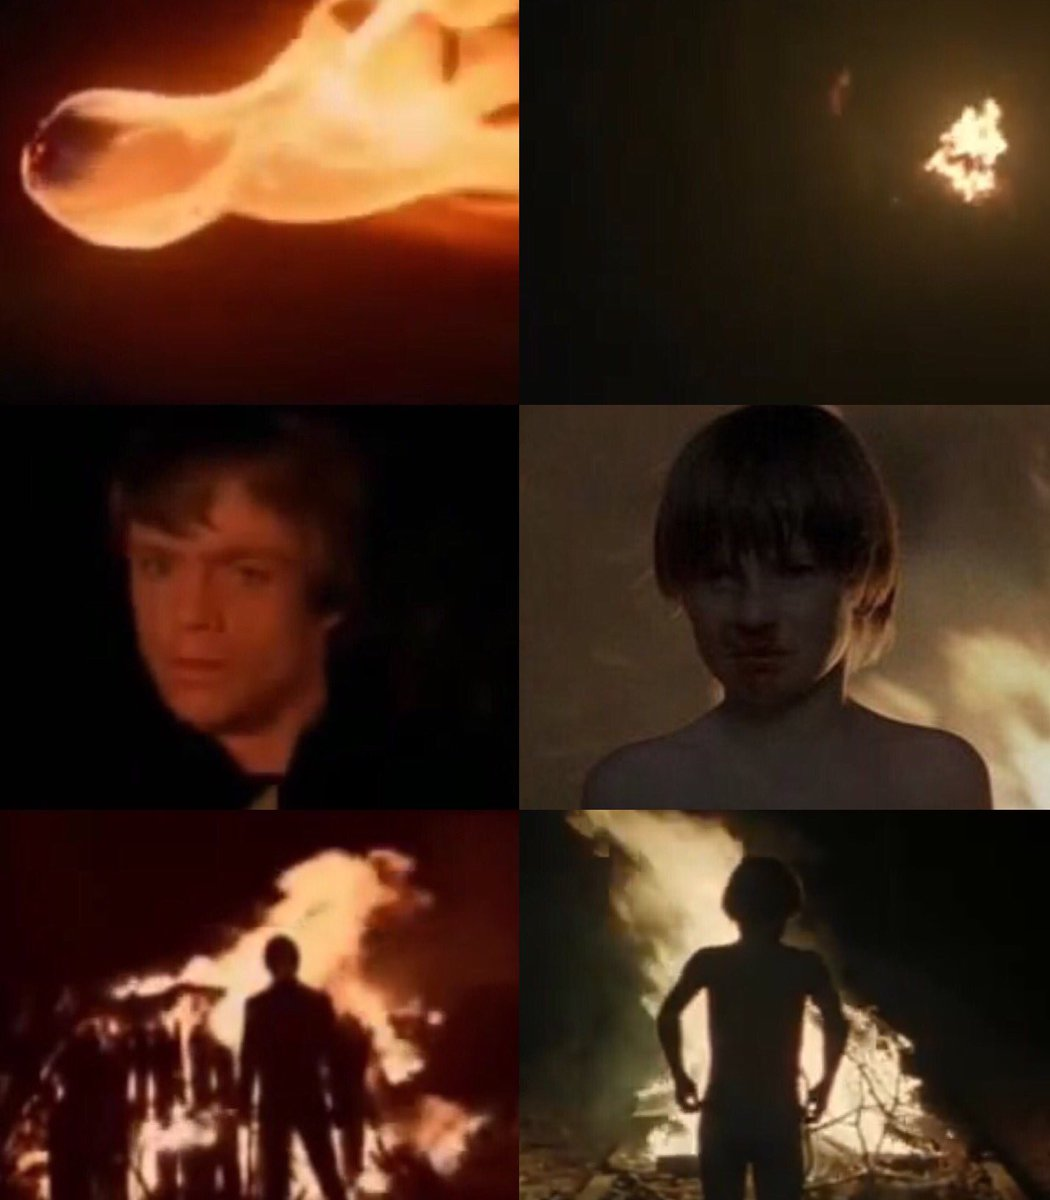 Return Of The Jedi/The Time Of The Wolf  #sidebyside #starwars40thanniversary #starwars40th #MichaelHaneke #jedi    http://www. pinnlandempire.com/2011/07/cinema -of-michael-haneke-told-through.html?m=1 &nbsp; … <br>http://pic.twitter.com/gOeJ31jC3X